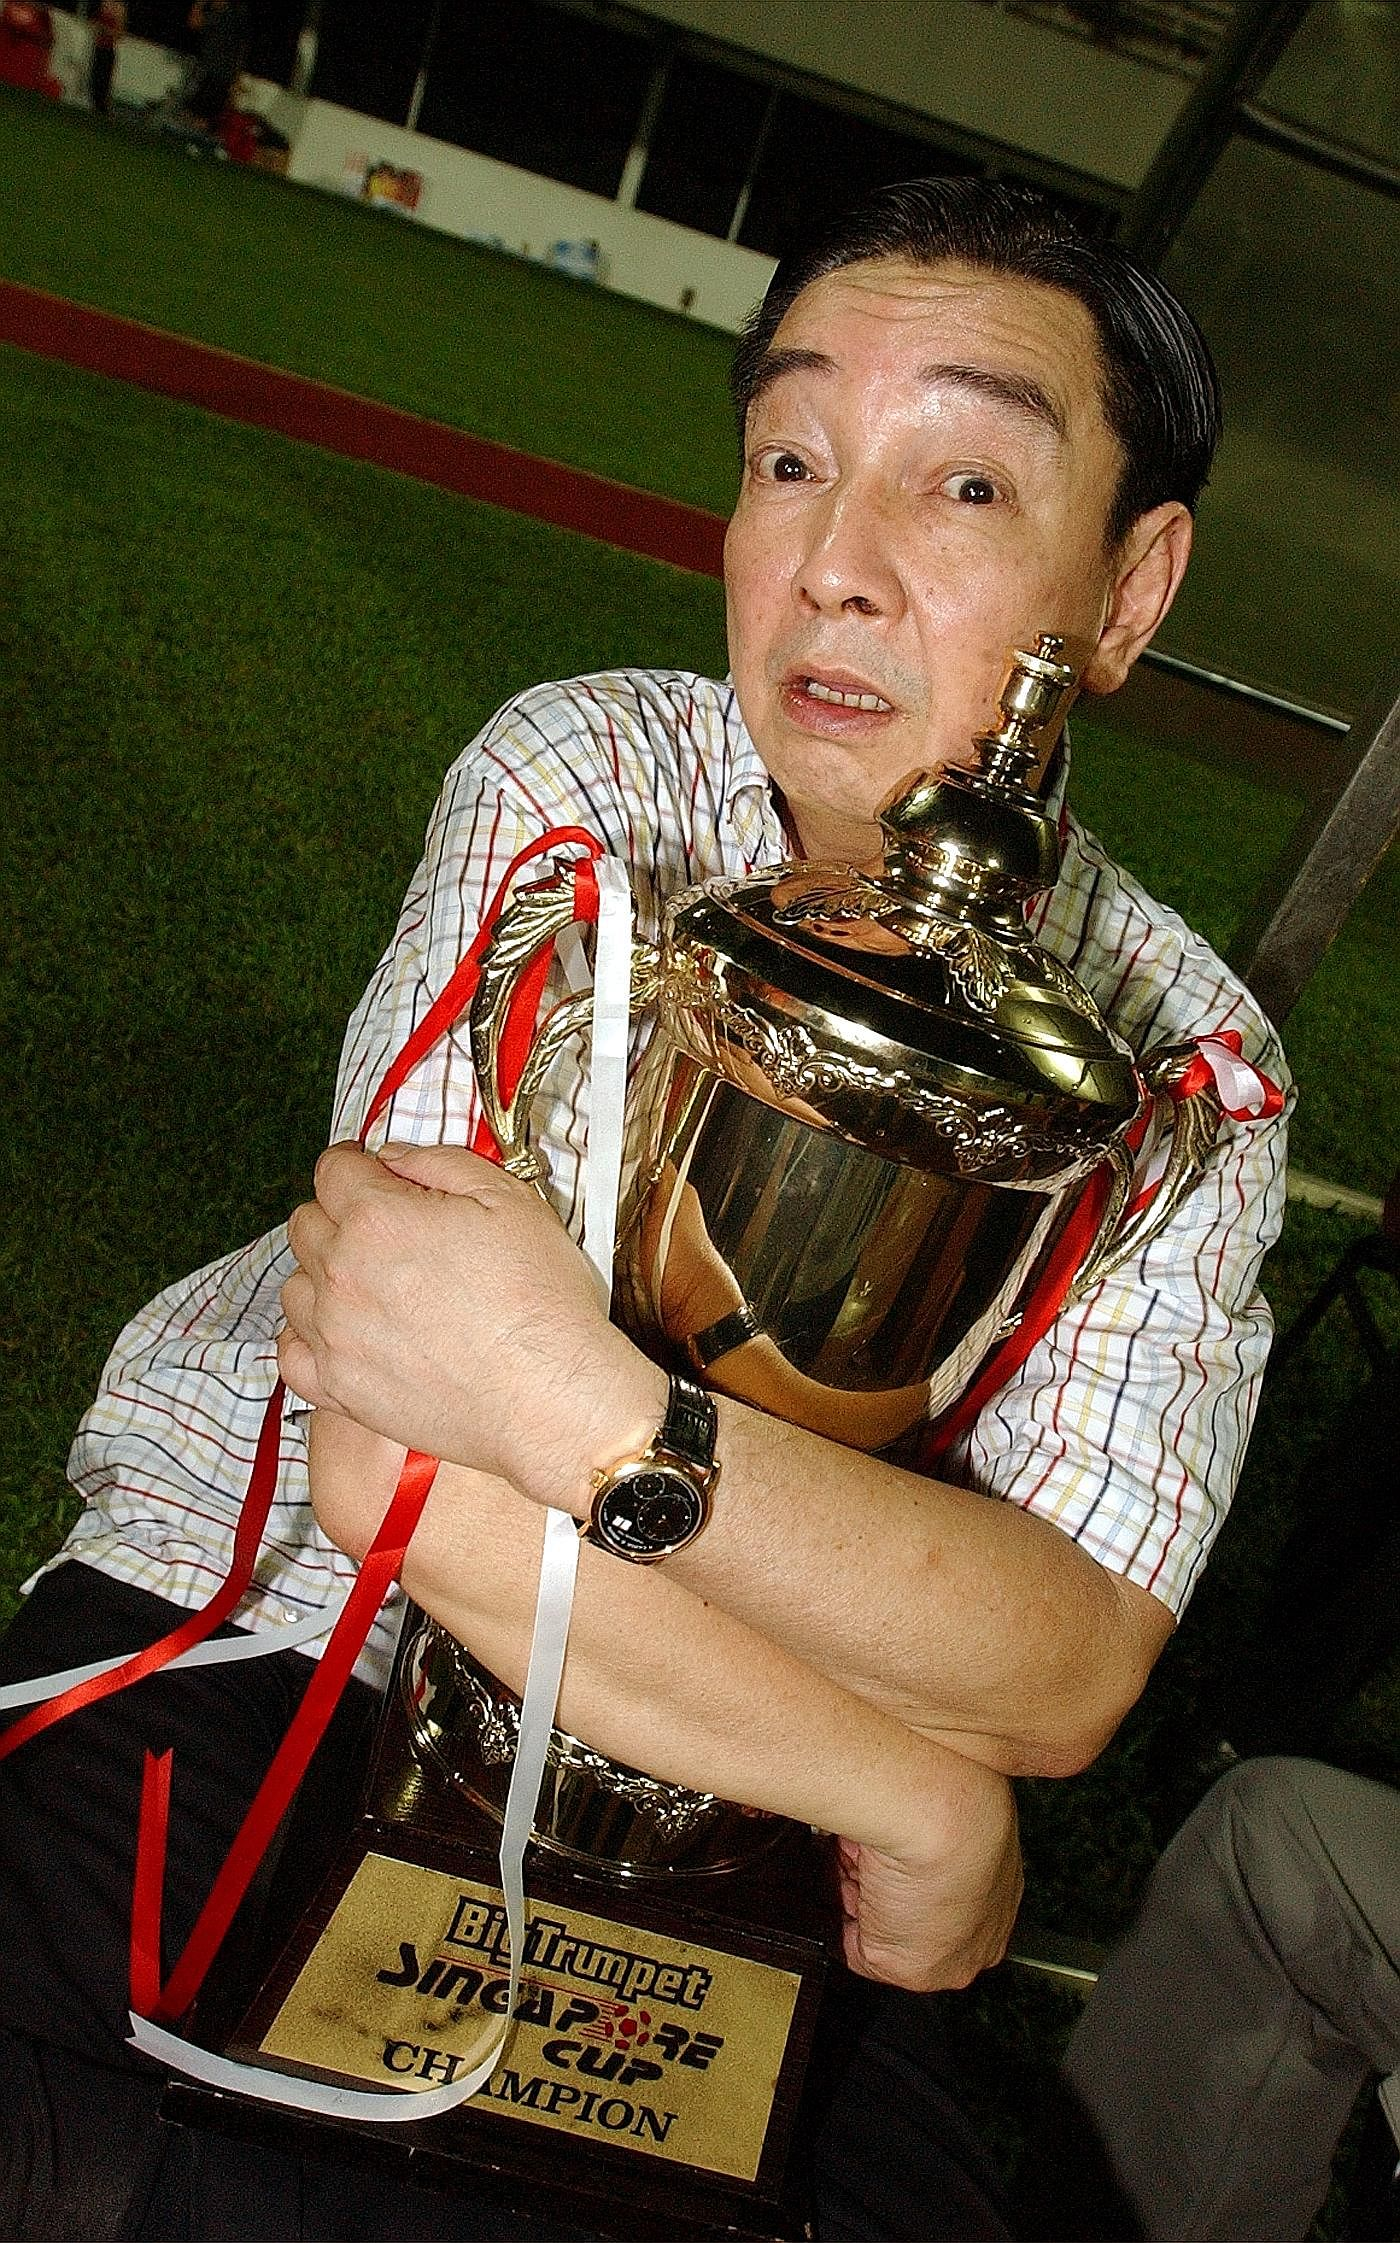 Teo Hock Seng back in 2004 with the Singapore Cup trophy. In 15 years as the Stags' chairman, he took pleasure in winning silverware and developing young players rather than aiming for lucrative returns.